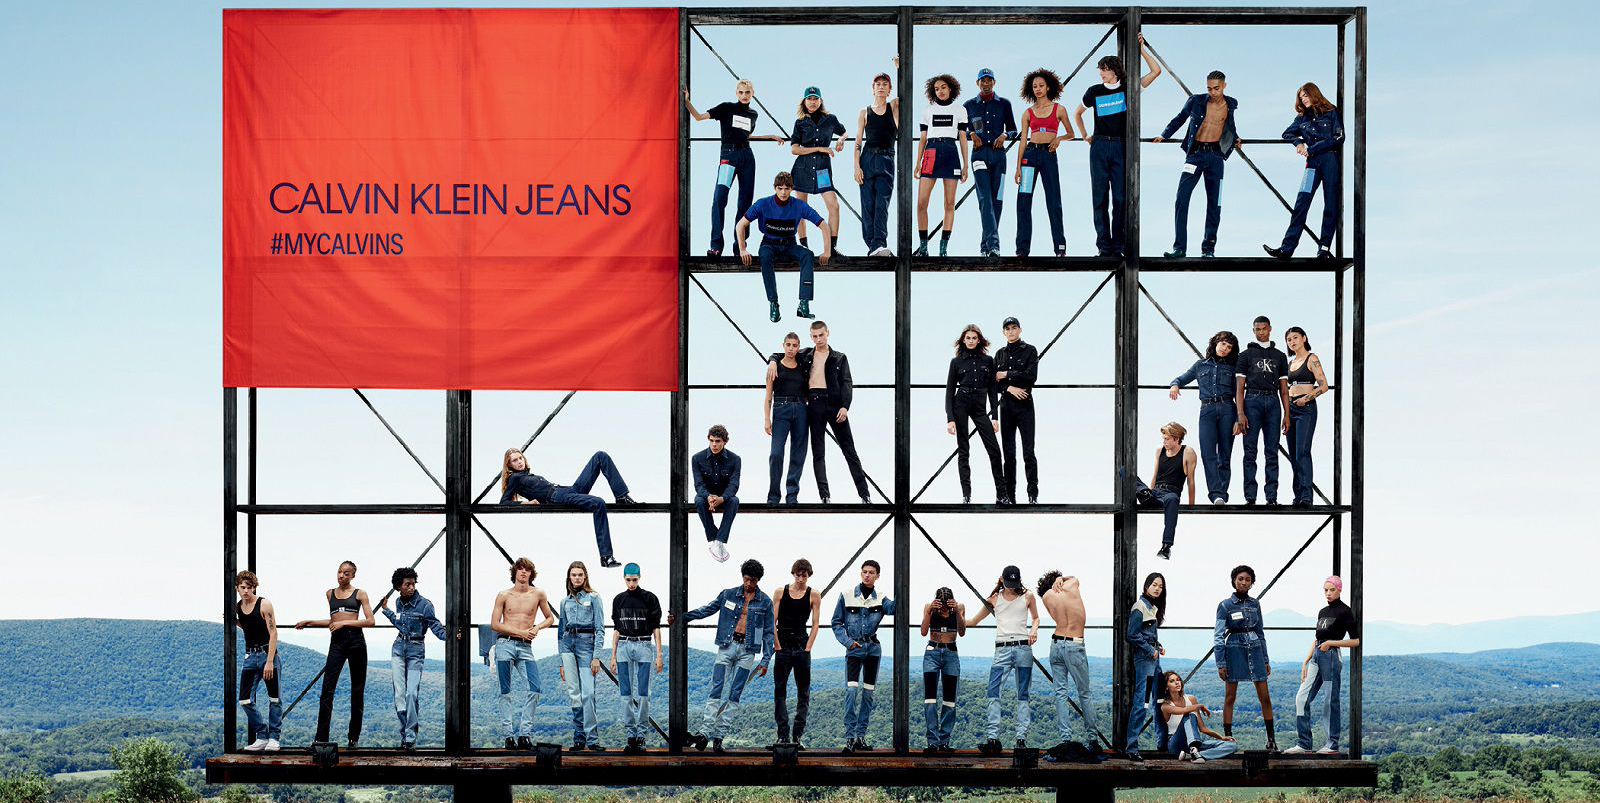 Calvin Klein Jeans Together in Denim Fall 2018 Ad Campaign